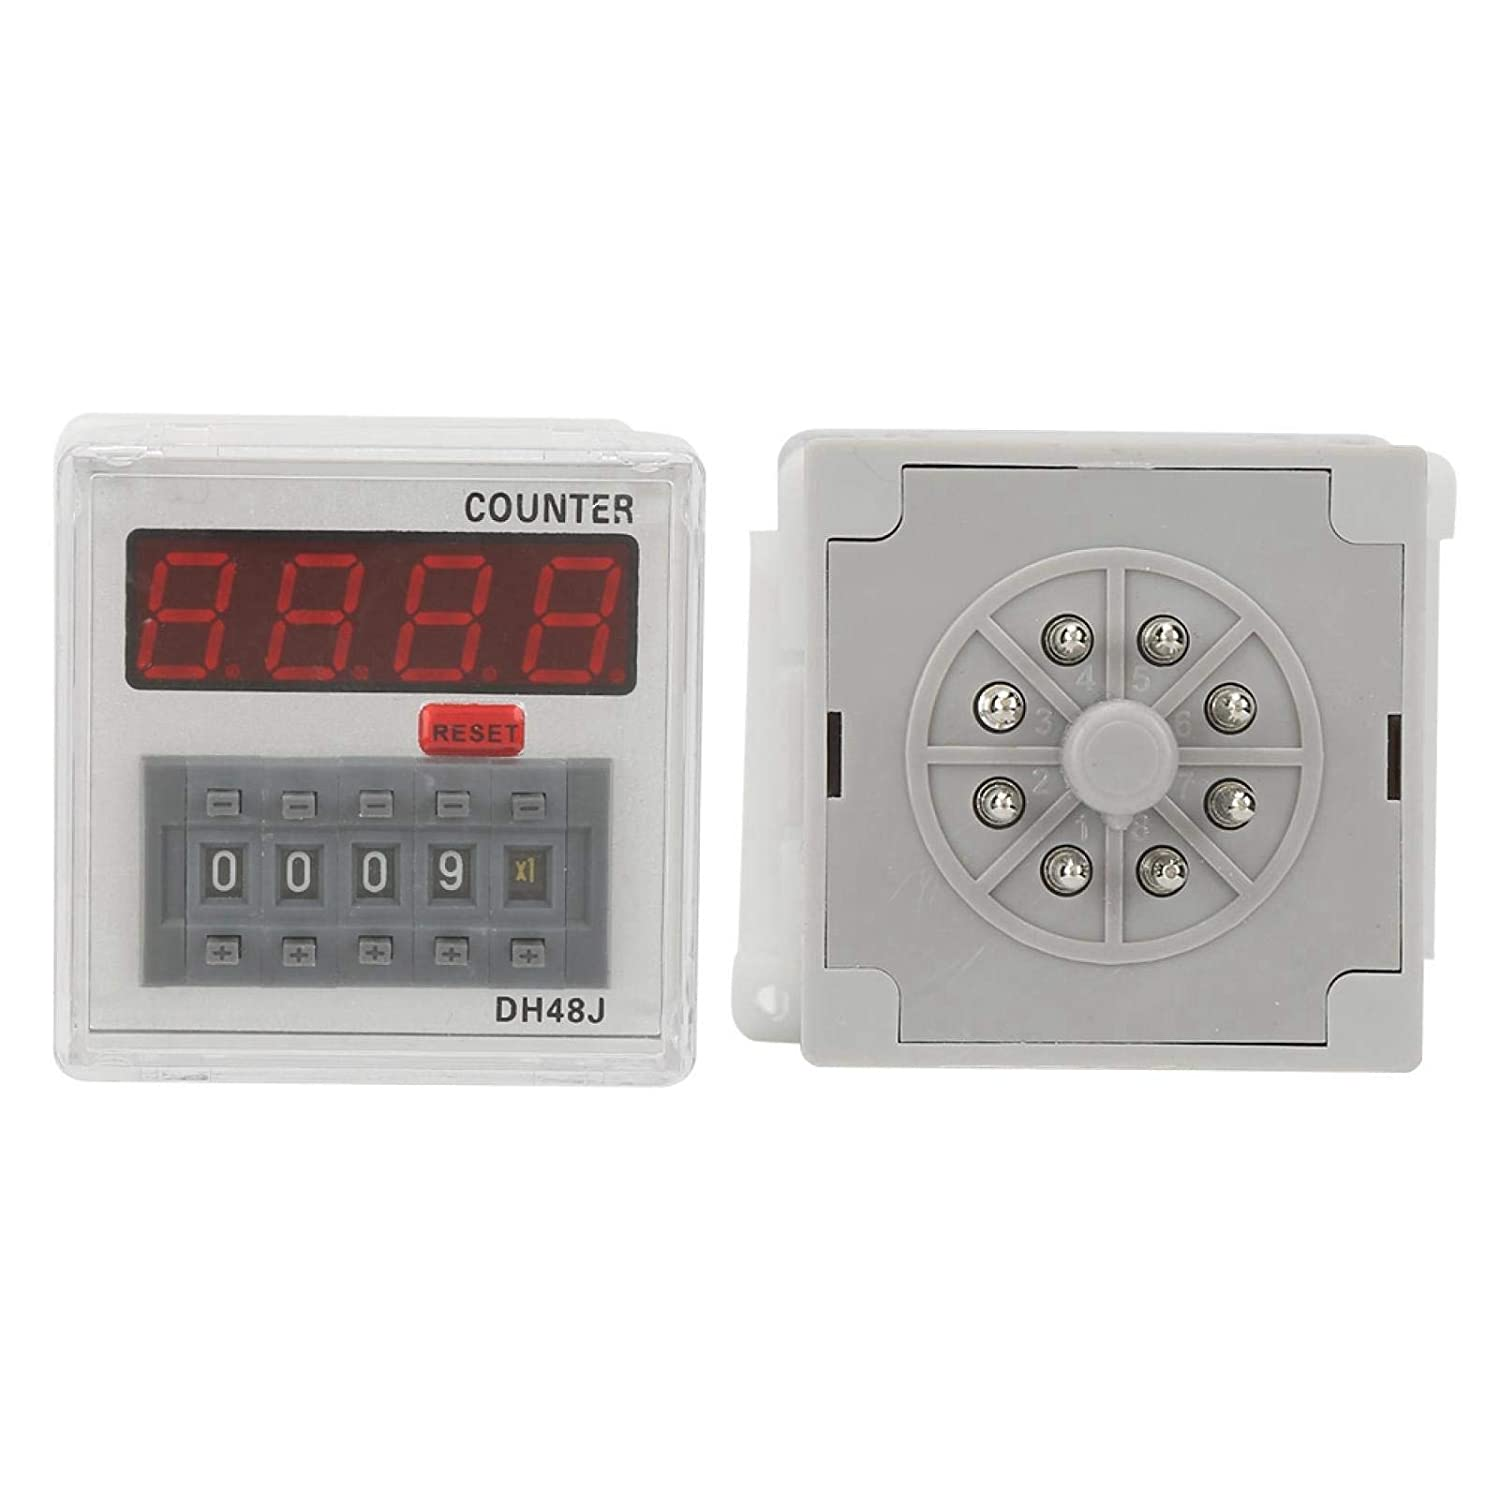 8-Pin 220VAC ABS Outer Case LED Display Digital Counter Relay 1-999900 for Communication Automatic Control